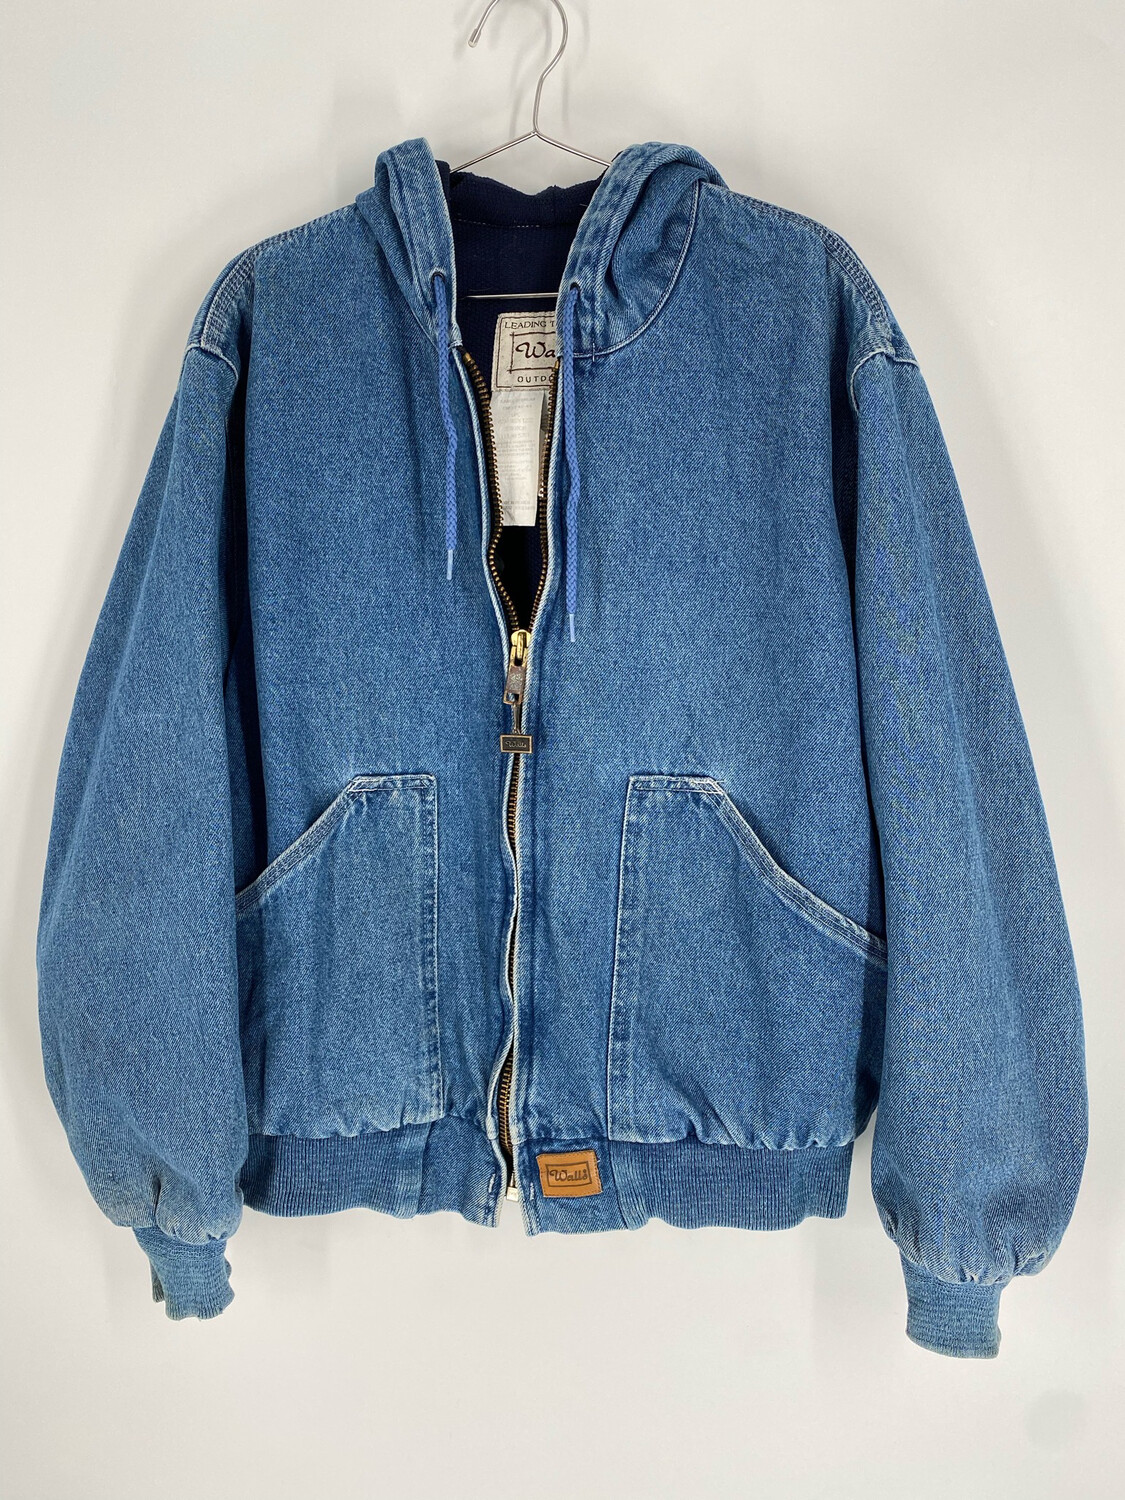 Walls Outdoor Denim Zip Up Hooded Bomber Jacket Size L